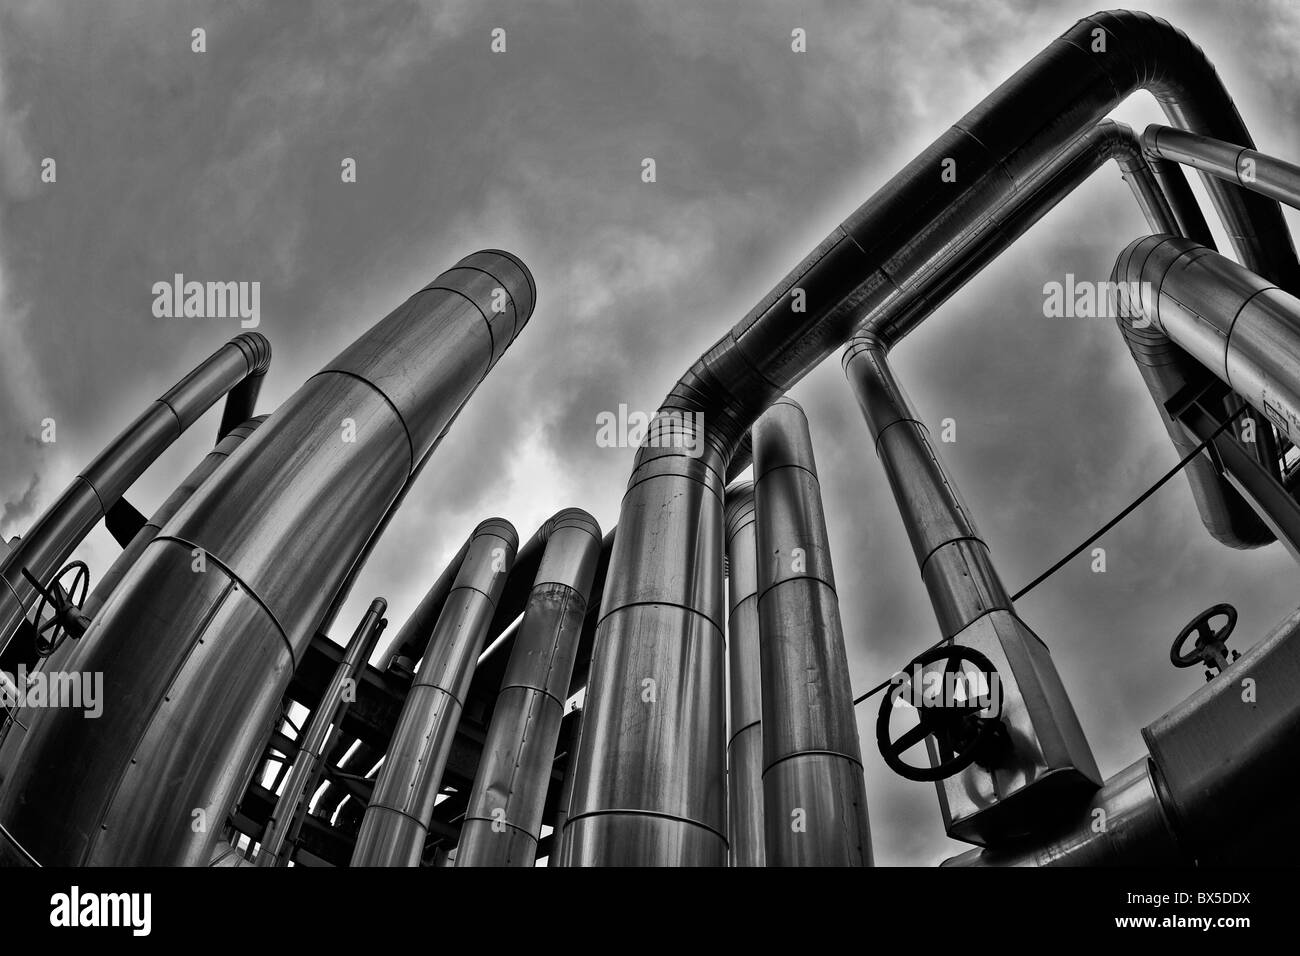 Taken in a geothermal installation Image taken in colour and passed to b&w - Stock Image